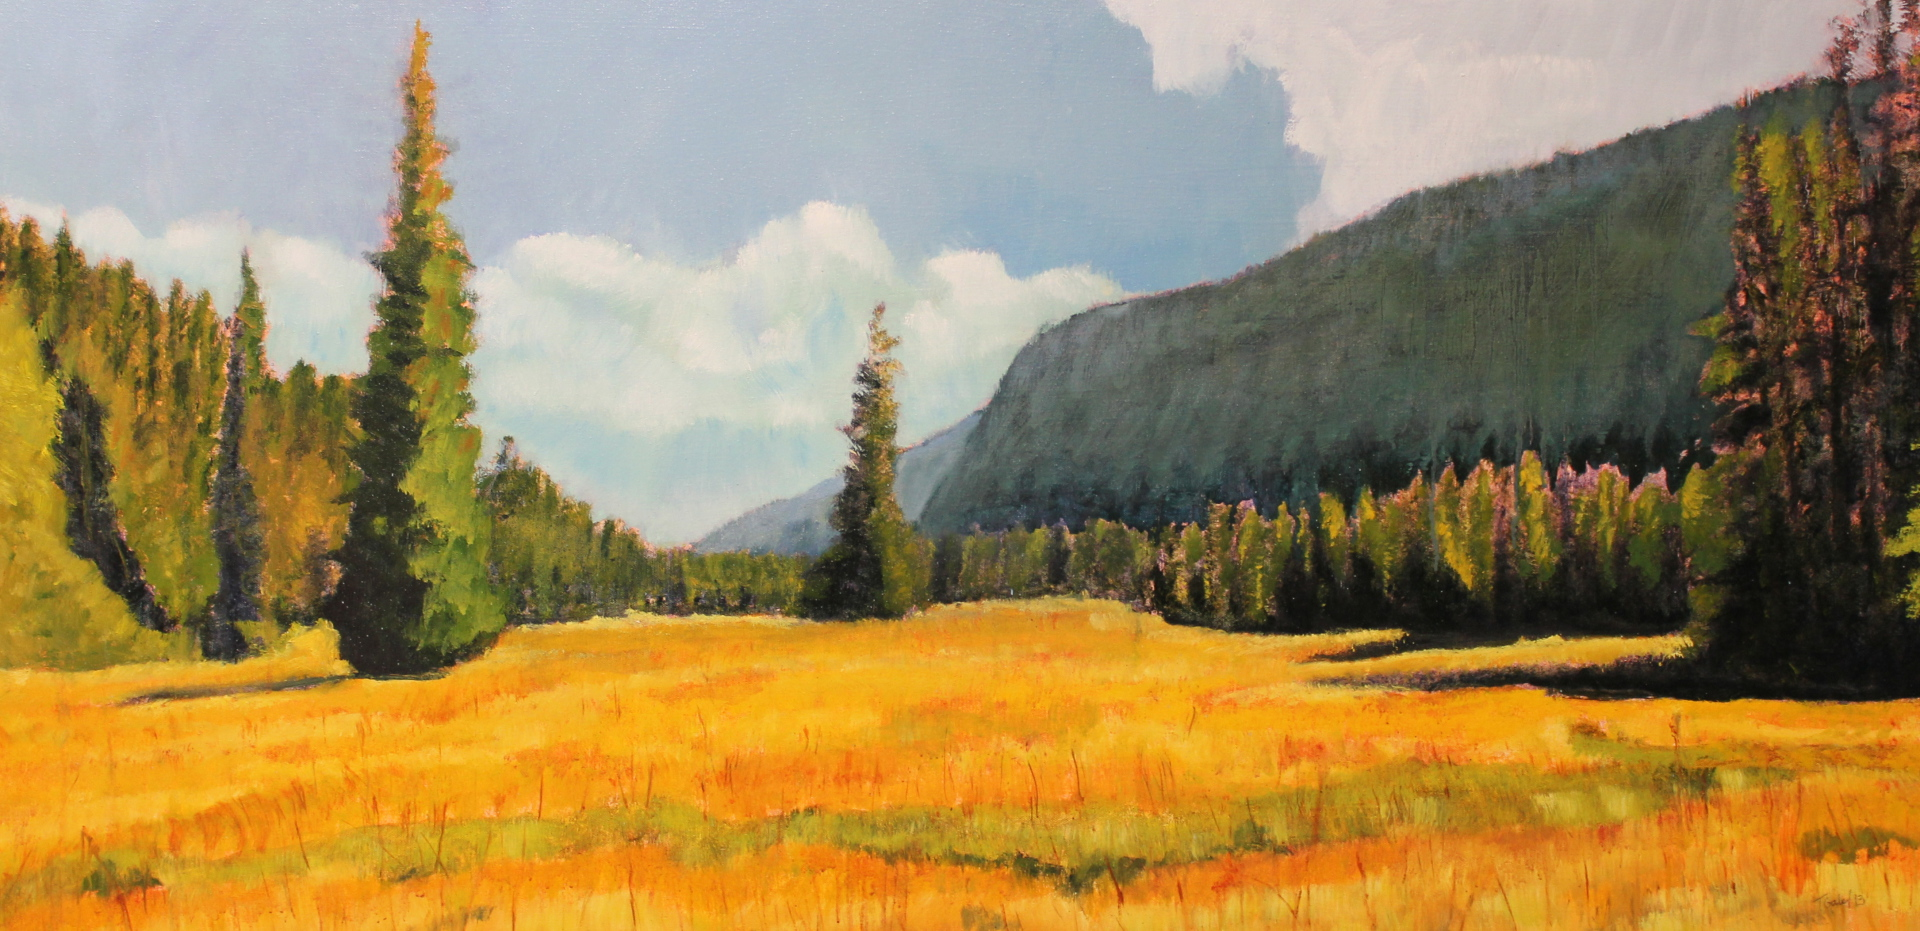 TANSY MEADOWS - 24X48 - OIL ON CANVAS - 2013